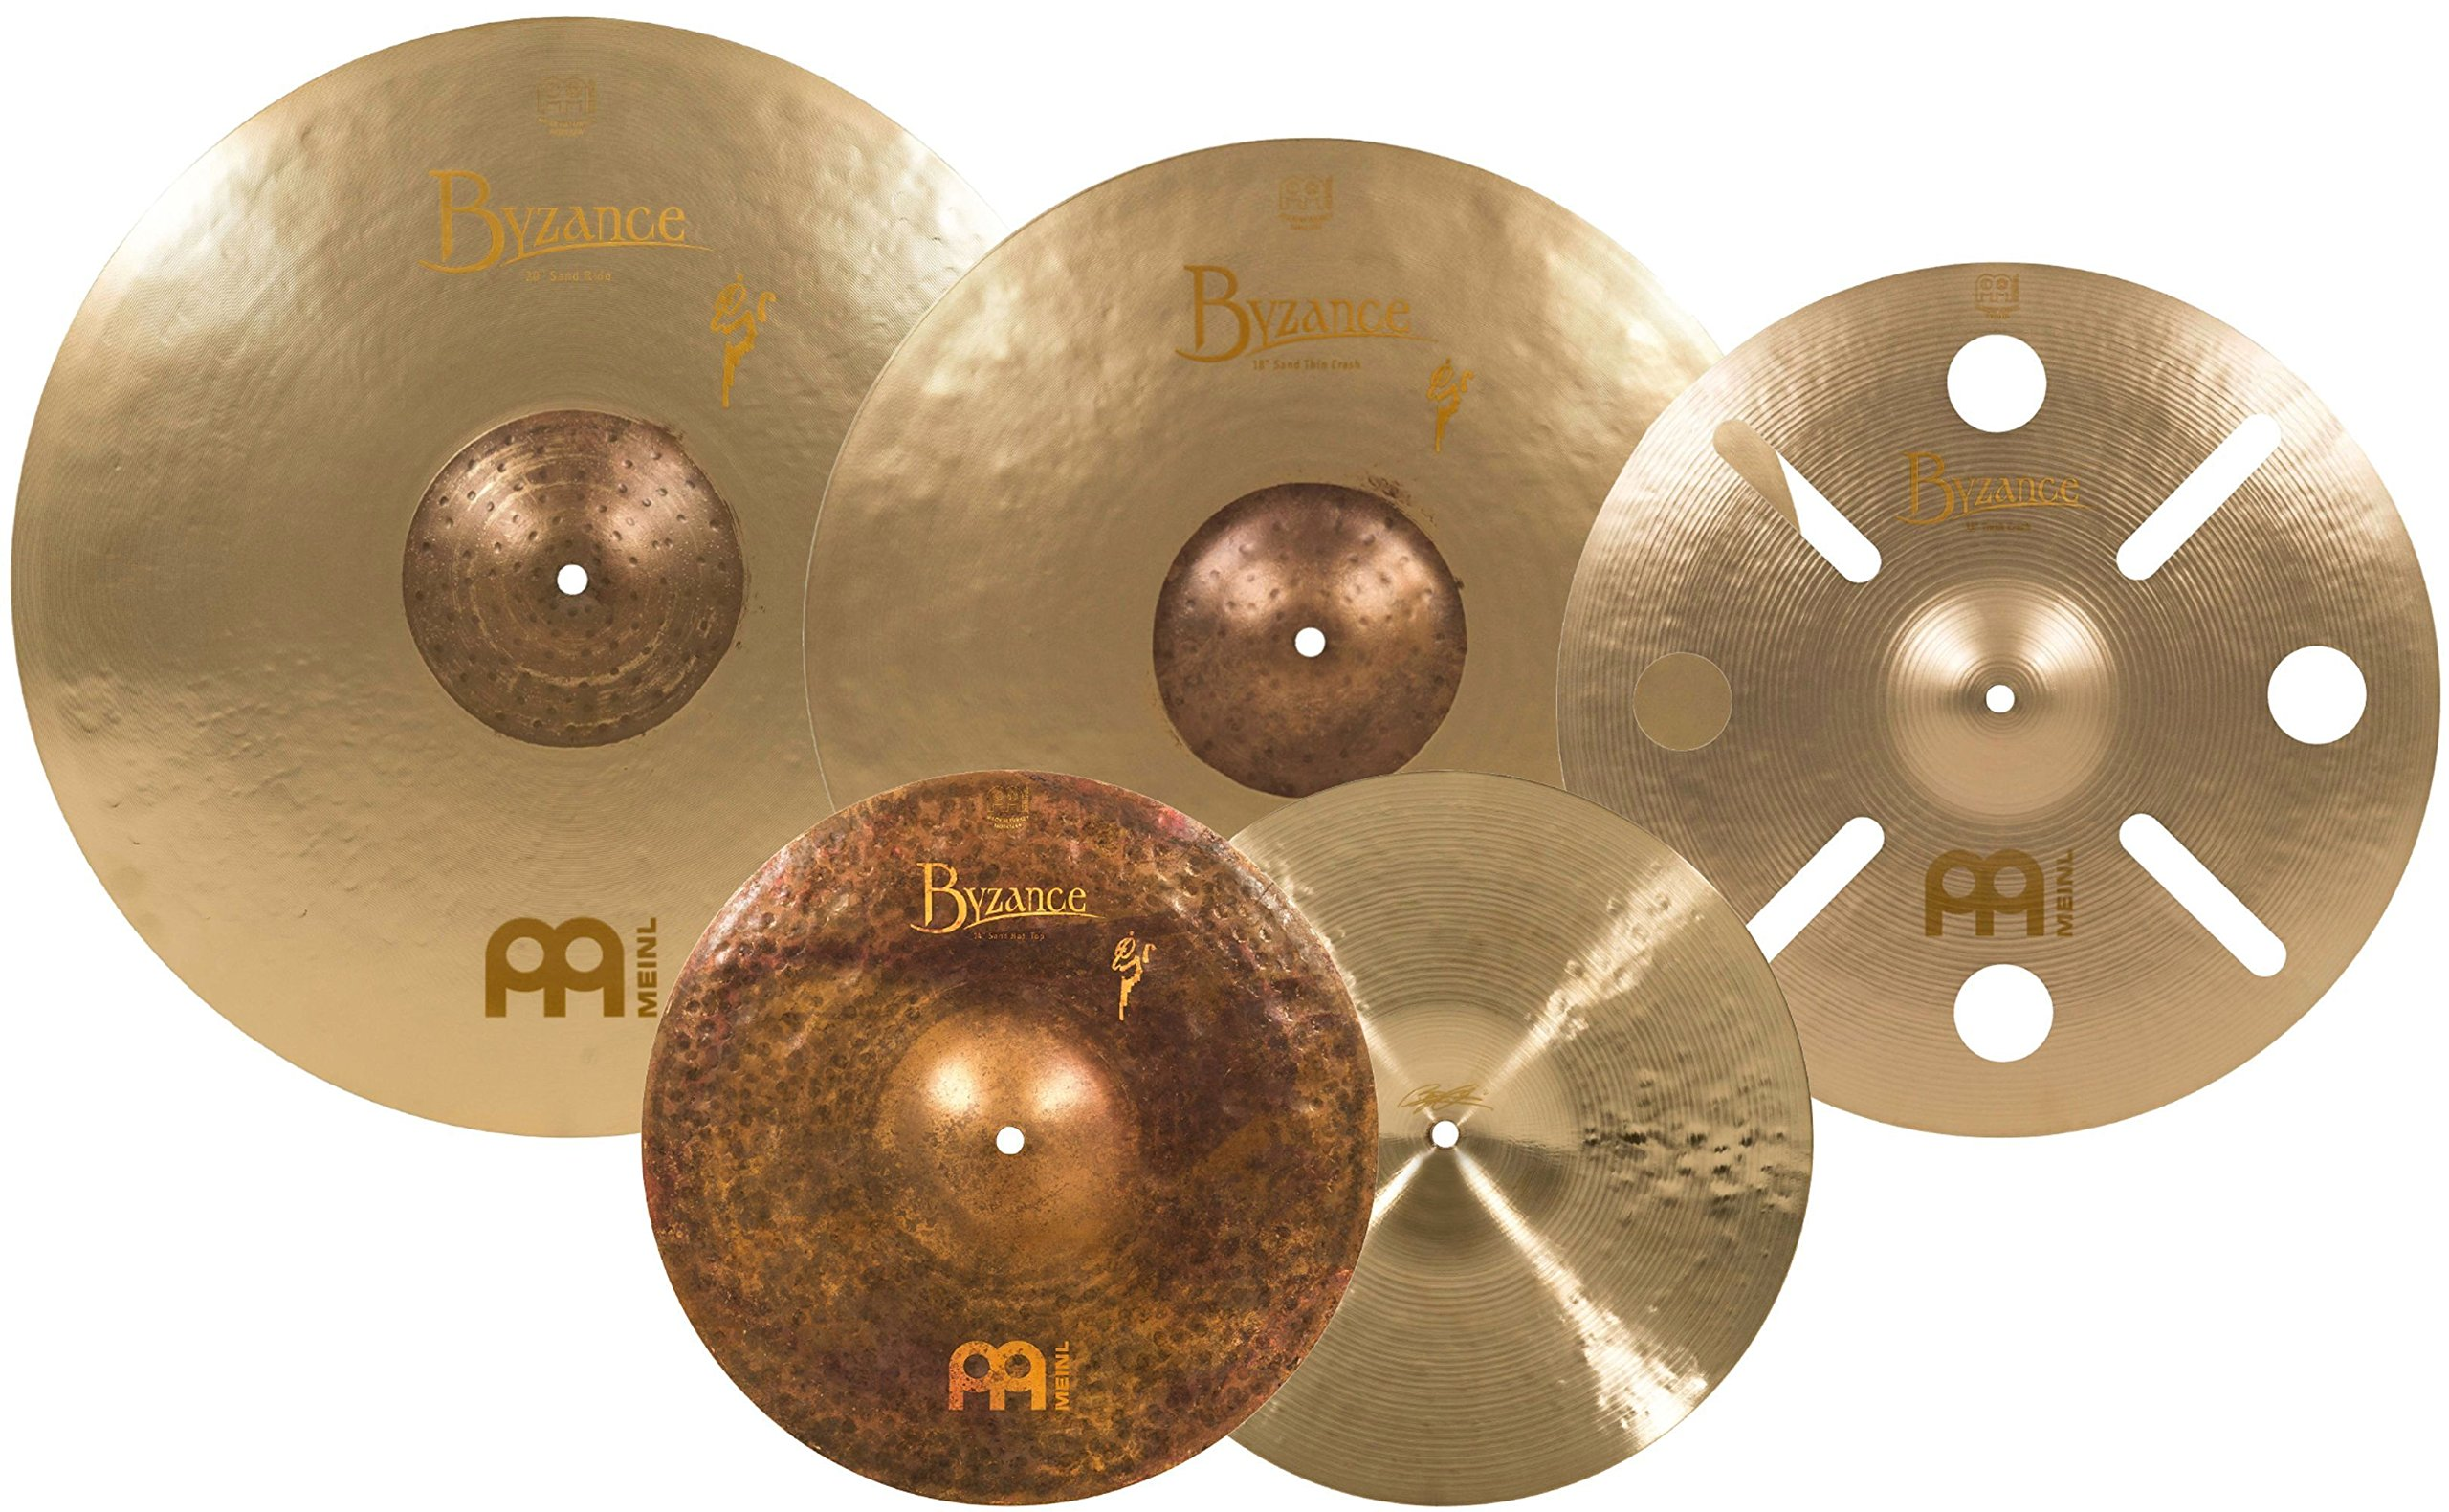 Meinl Cymbals BV-480+B16TRC Byzance Vintage Series Benny Greb Sand Cymbal Box Set Pack with FREE 16-Inch Trash Crash (VIDEO)